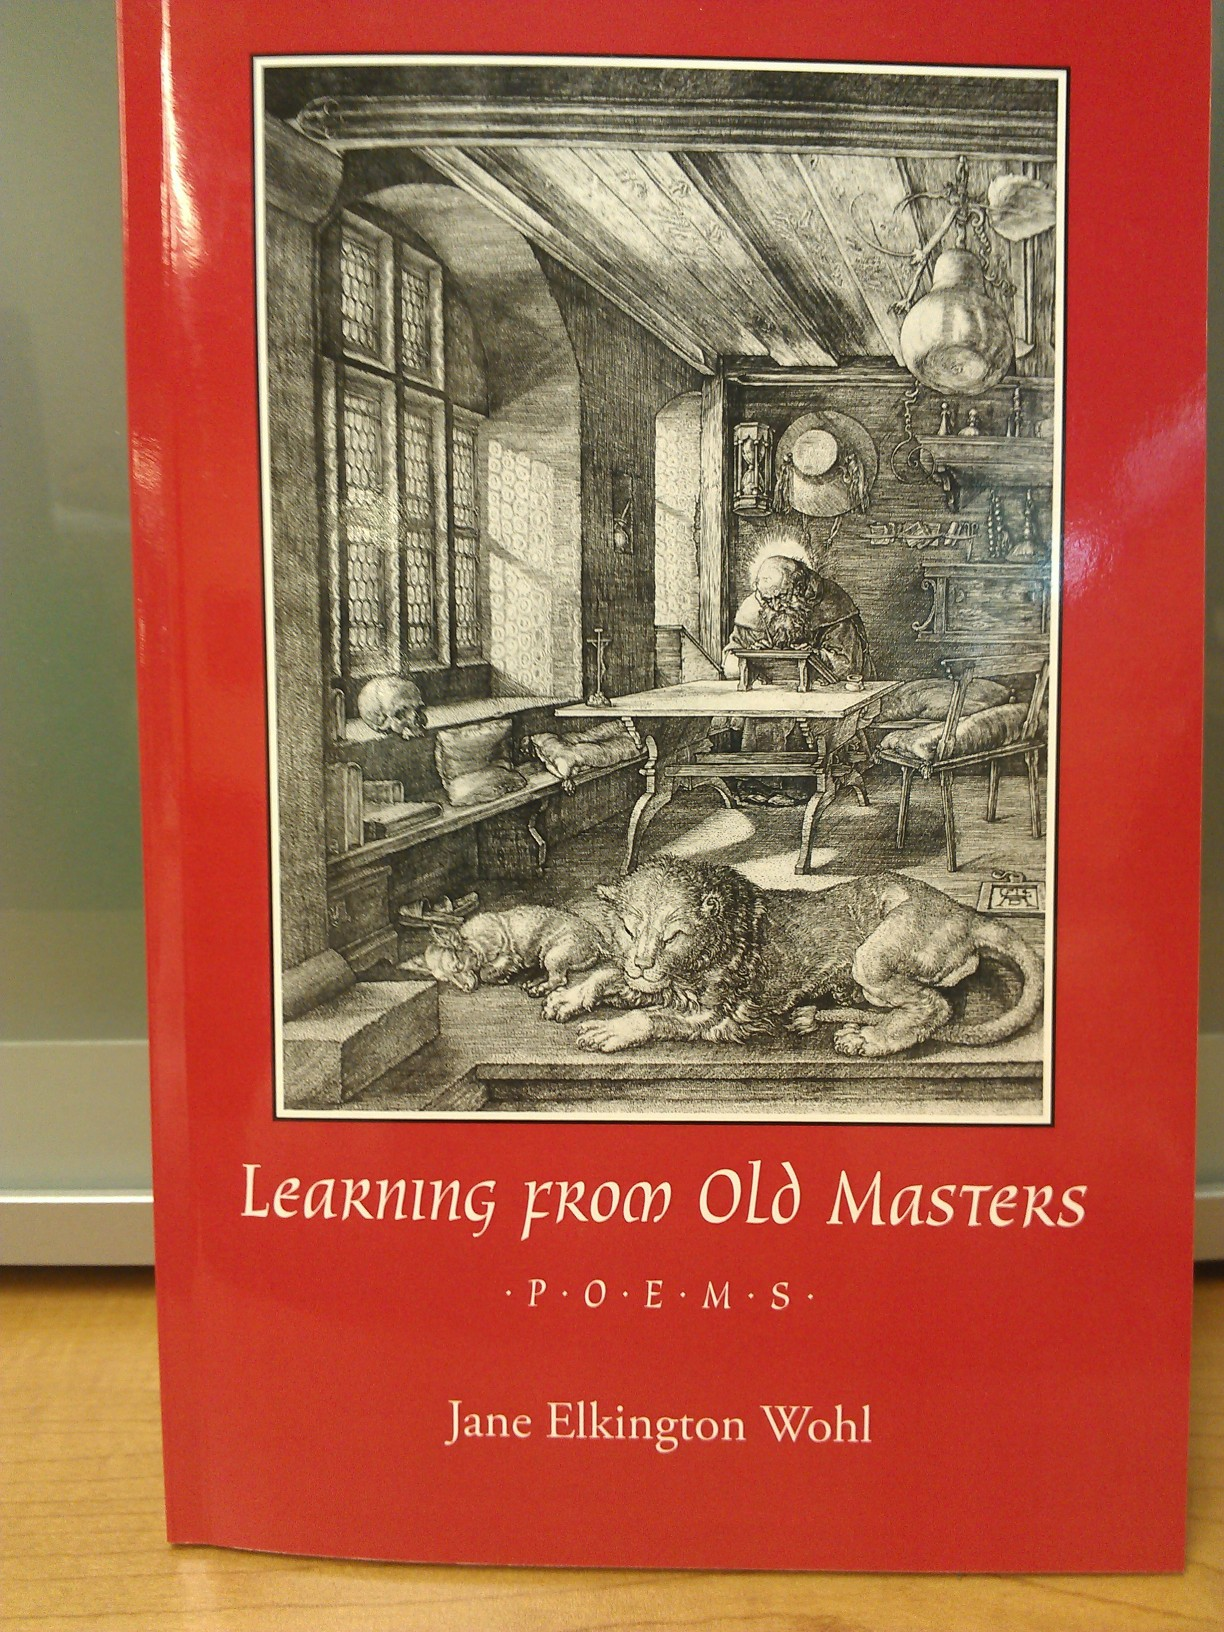 And have you read… Learning from Old Masters?